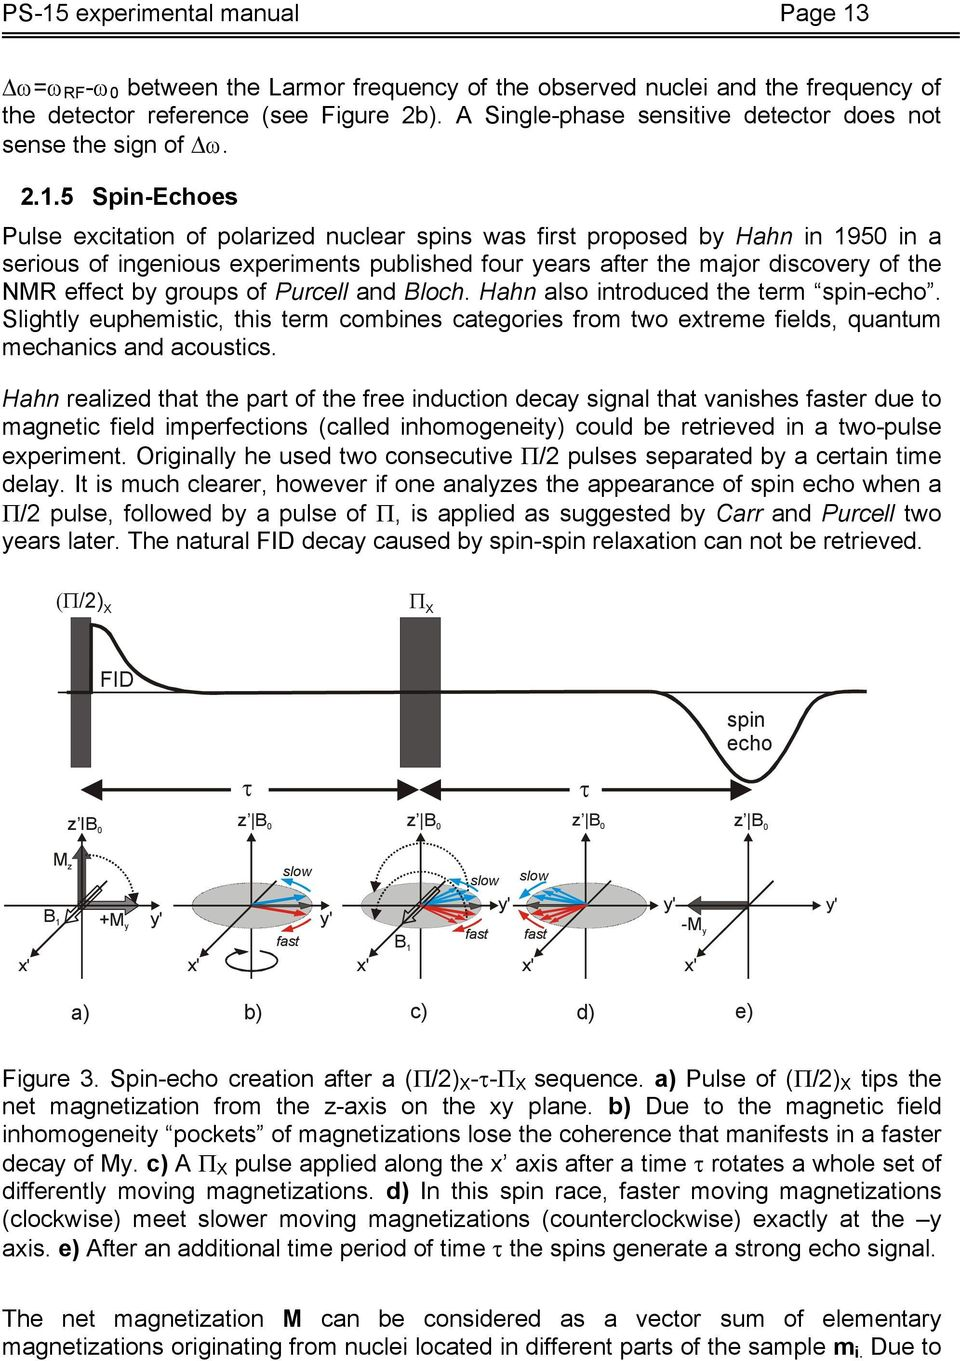 5 Spin-Echoes Pulse excitation of polarized nuclear spins was first proposed by Hahn in 1950 in a serious of ingenious experiments published four years after the major discovery of the NMR effect by